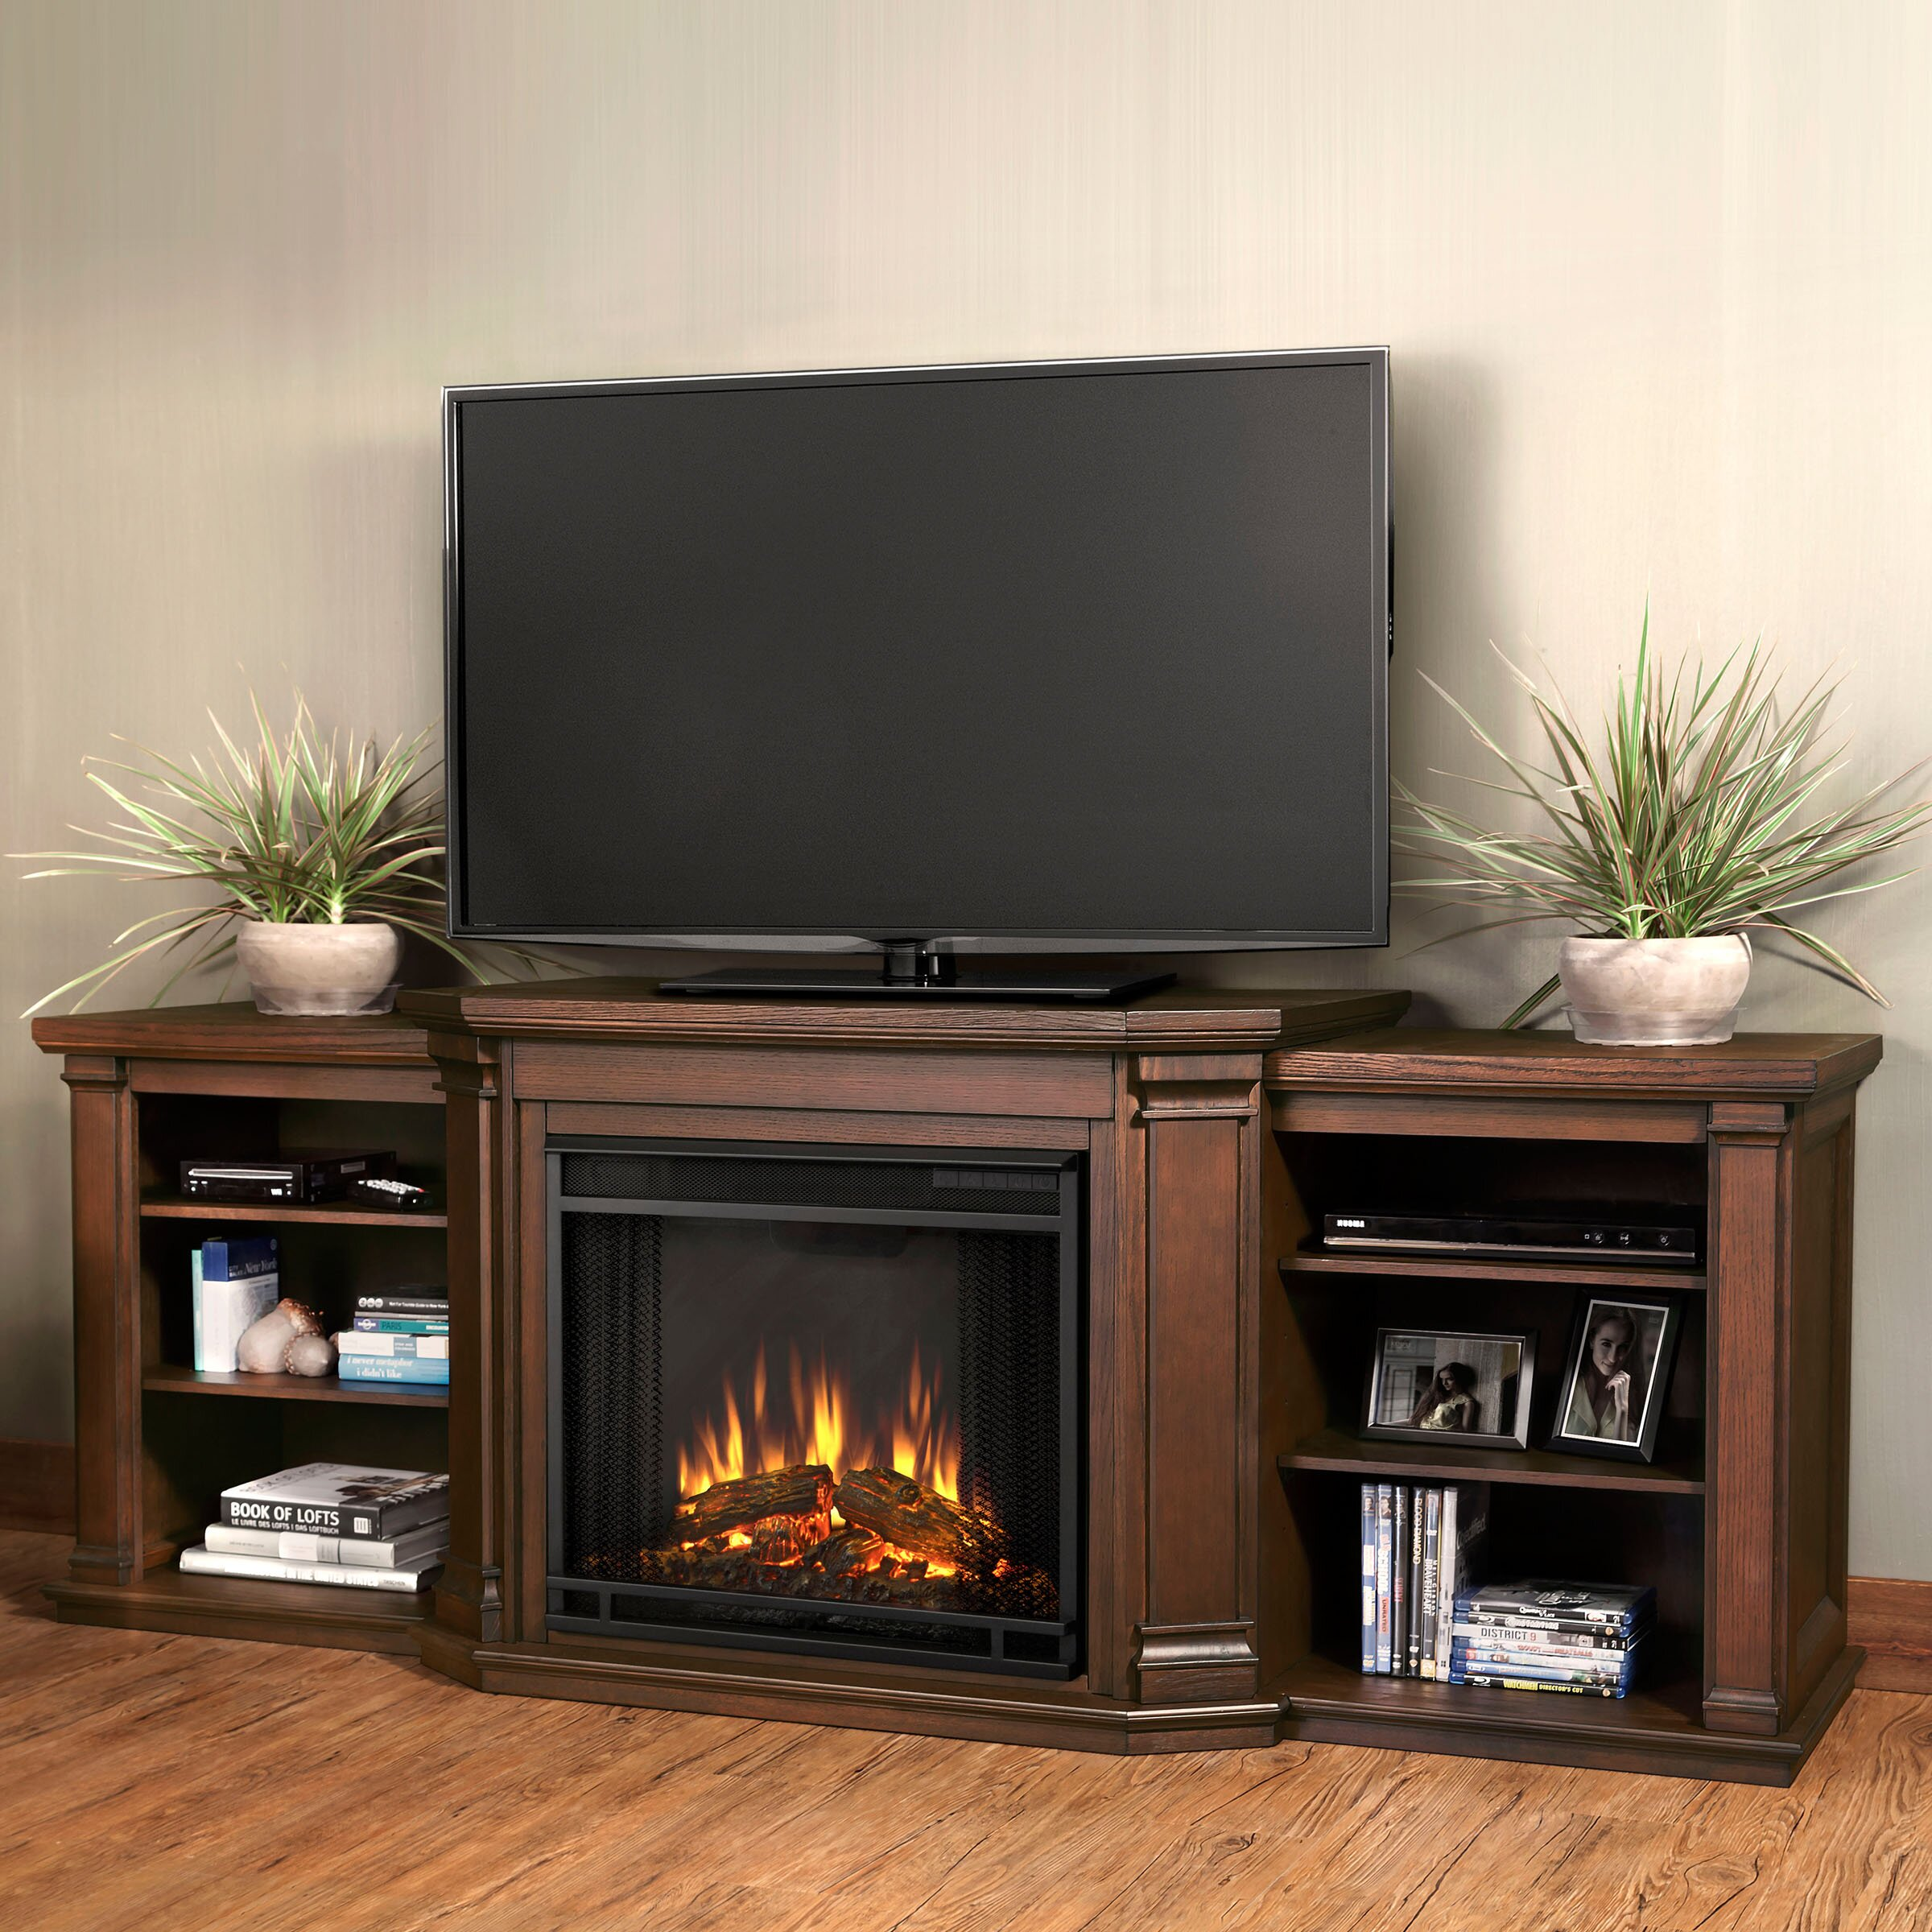 Fireplace Tv Stand Walmart Junsaus Fireplace Heater Tv Stand ~ dact.us